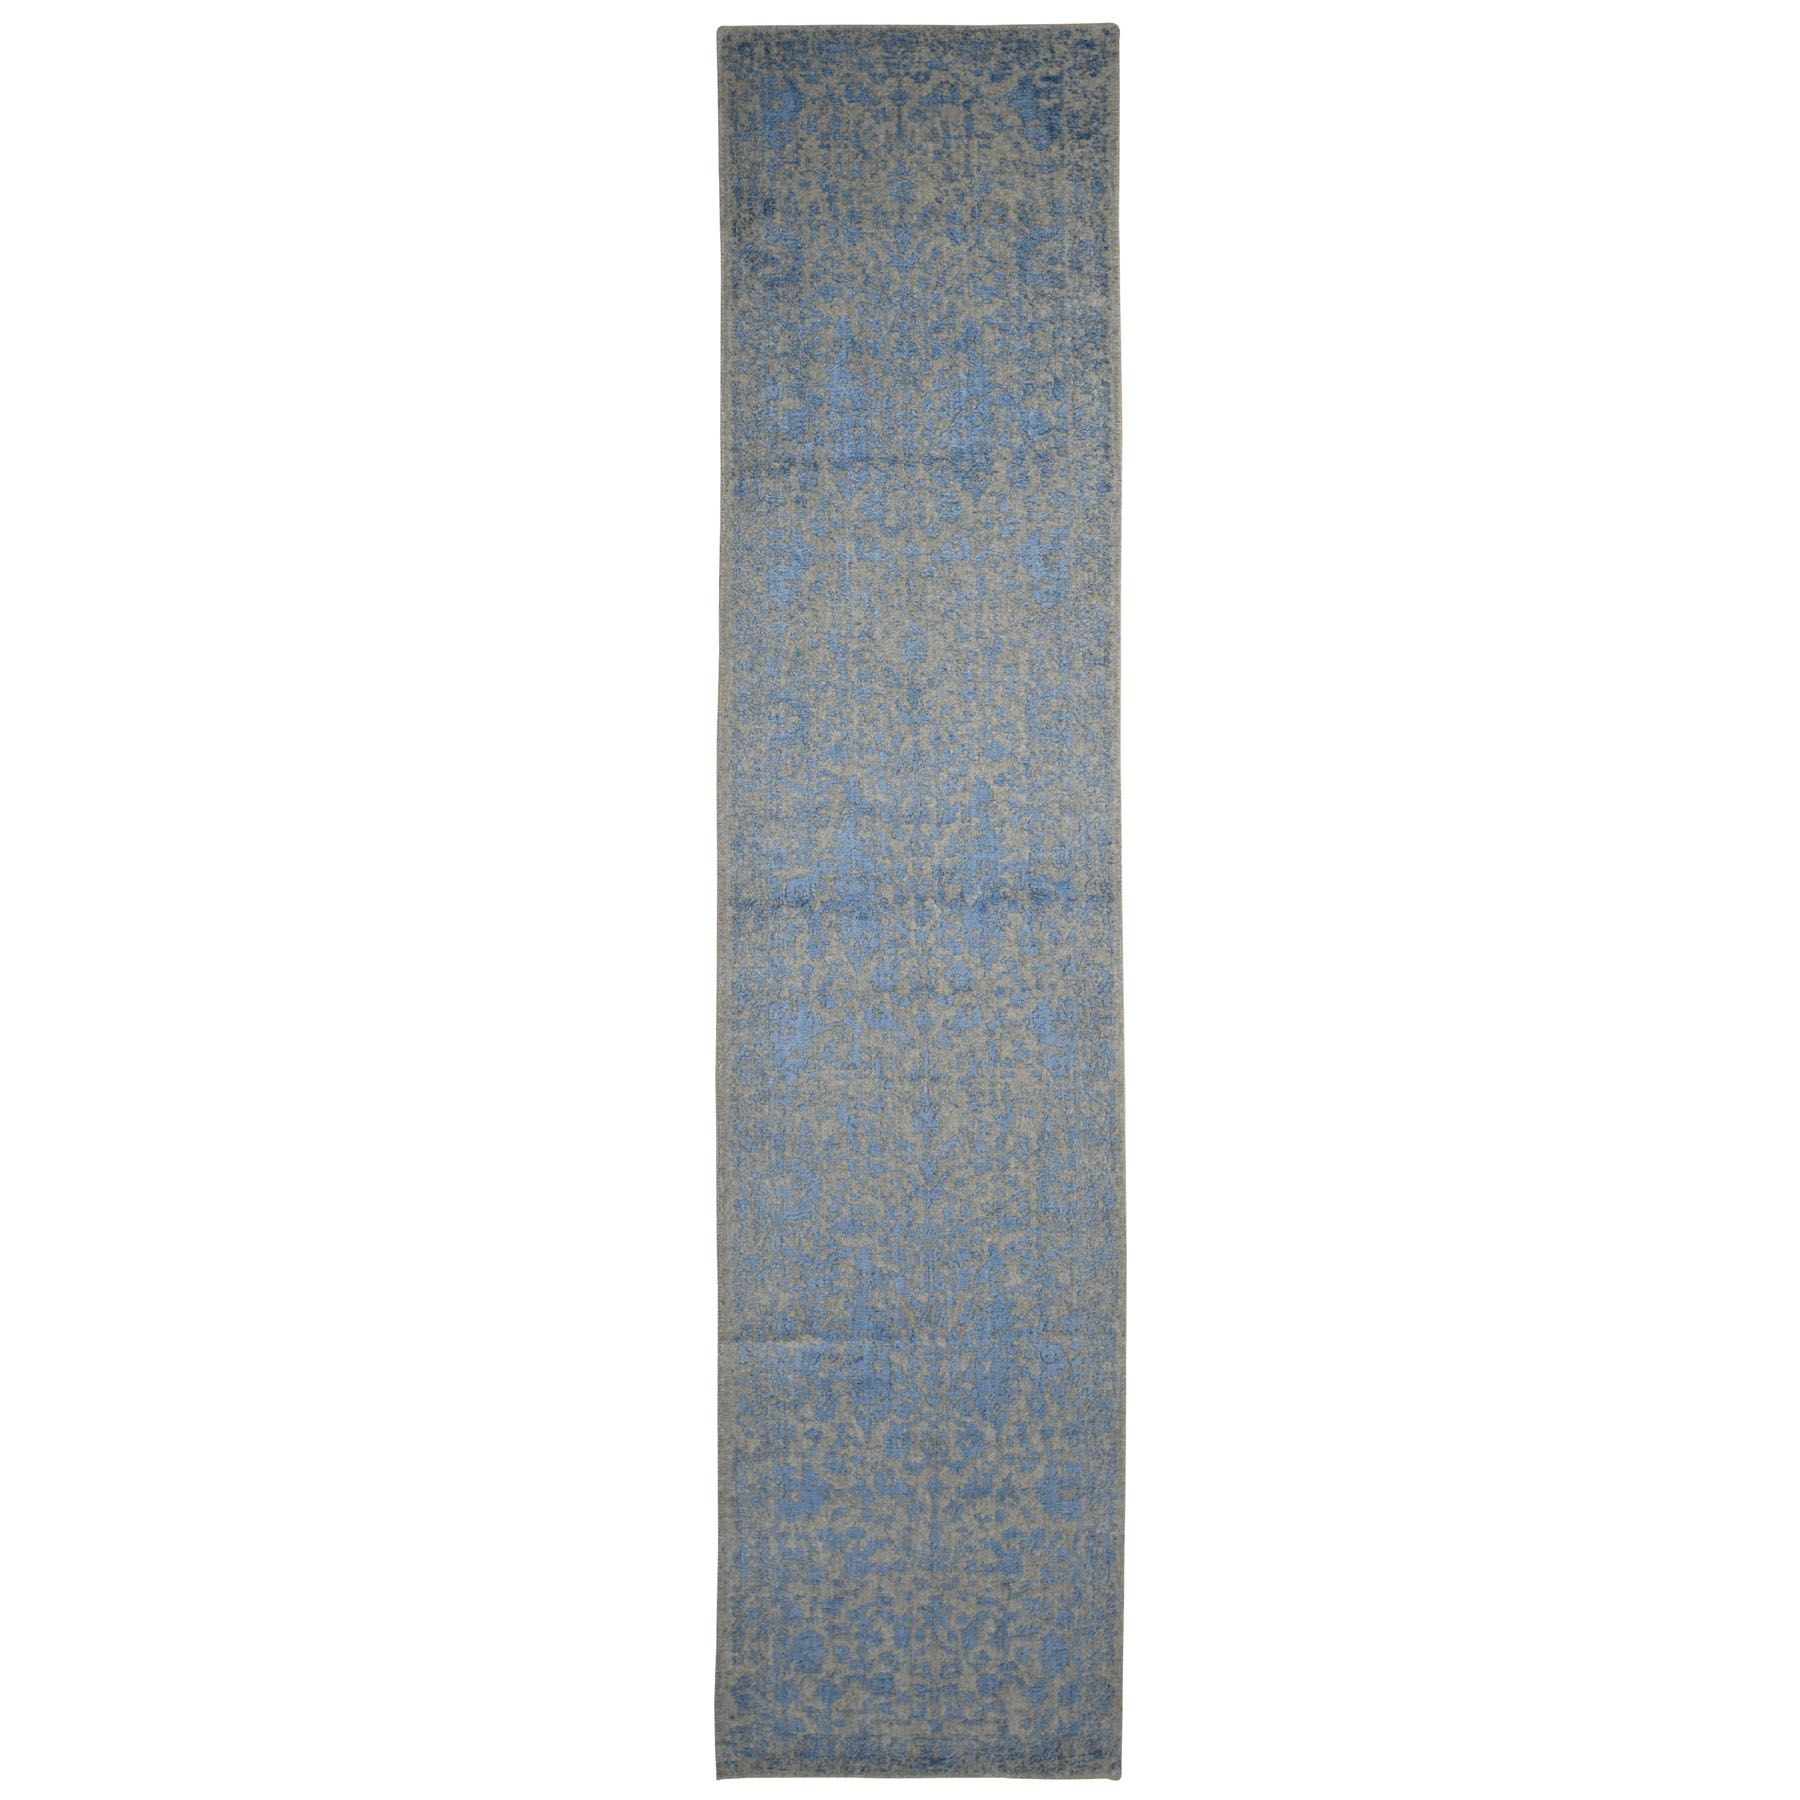 "2'5""X12'1"" Jacquard Hand Loomed Blue Broken Cypress Tree Design Silken Thick And Plush Runner Oriental Rug moad9a66"